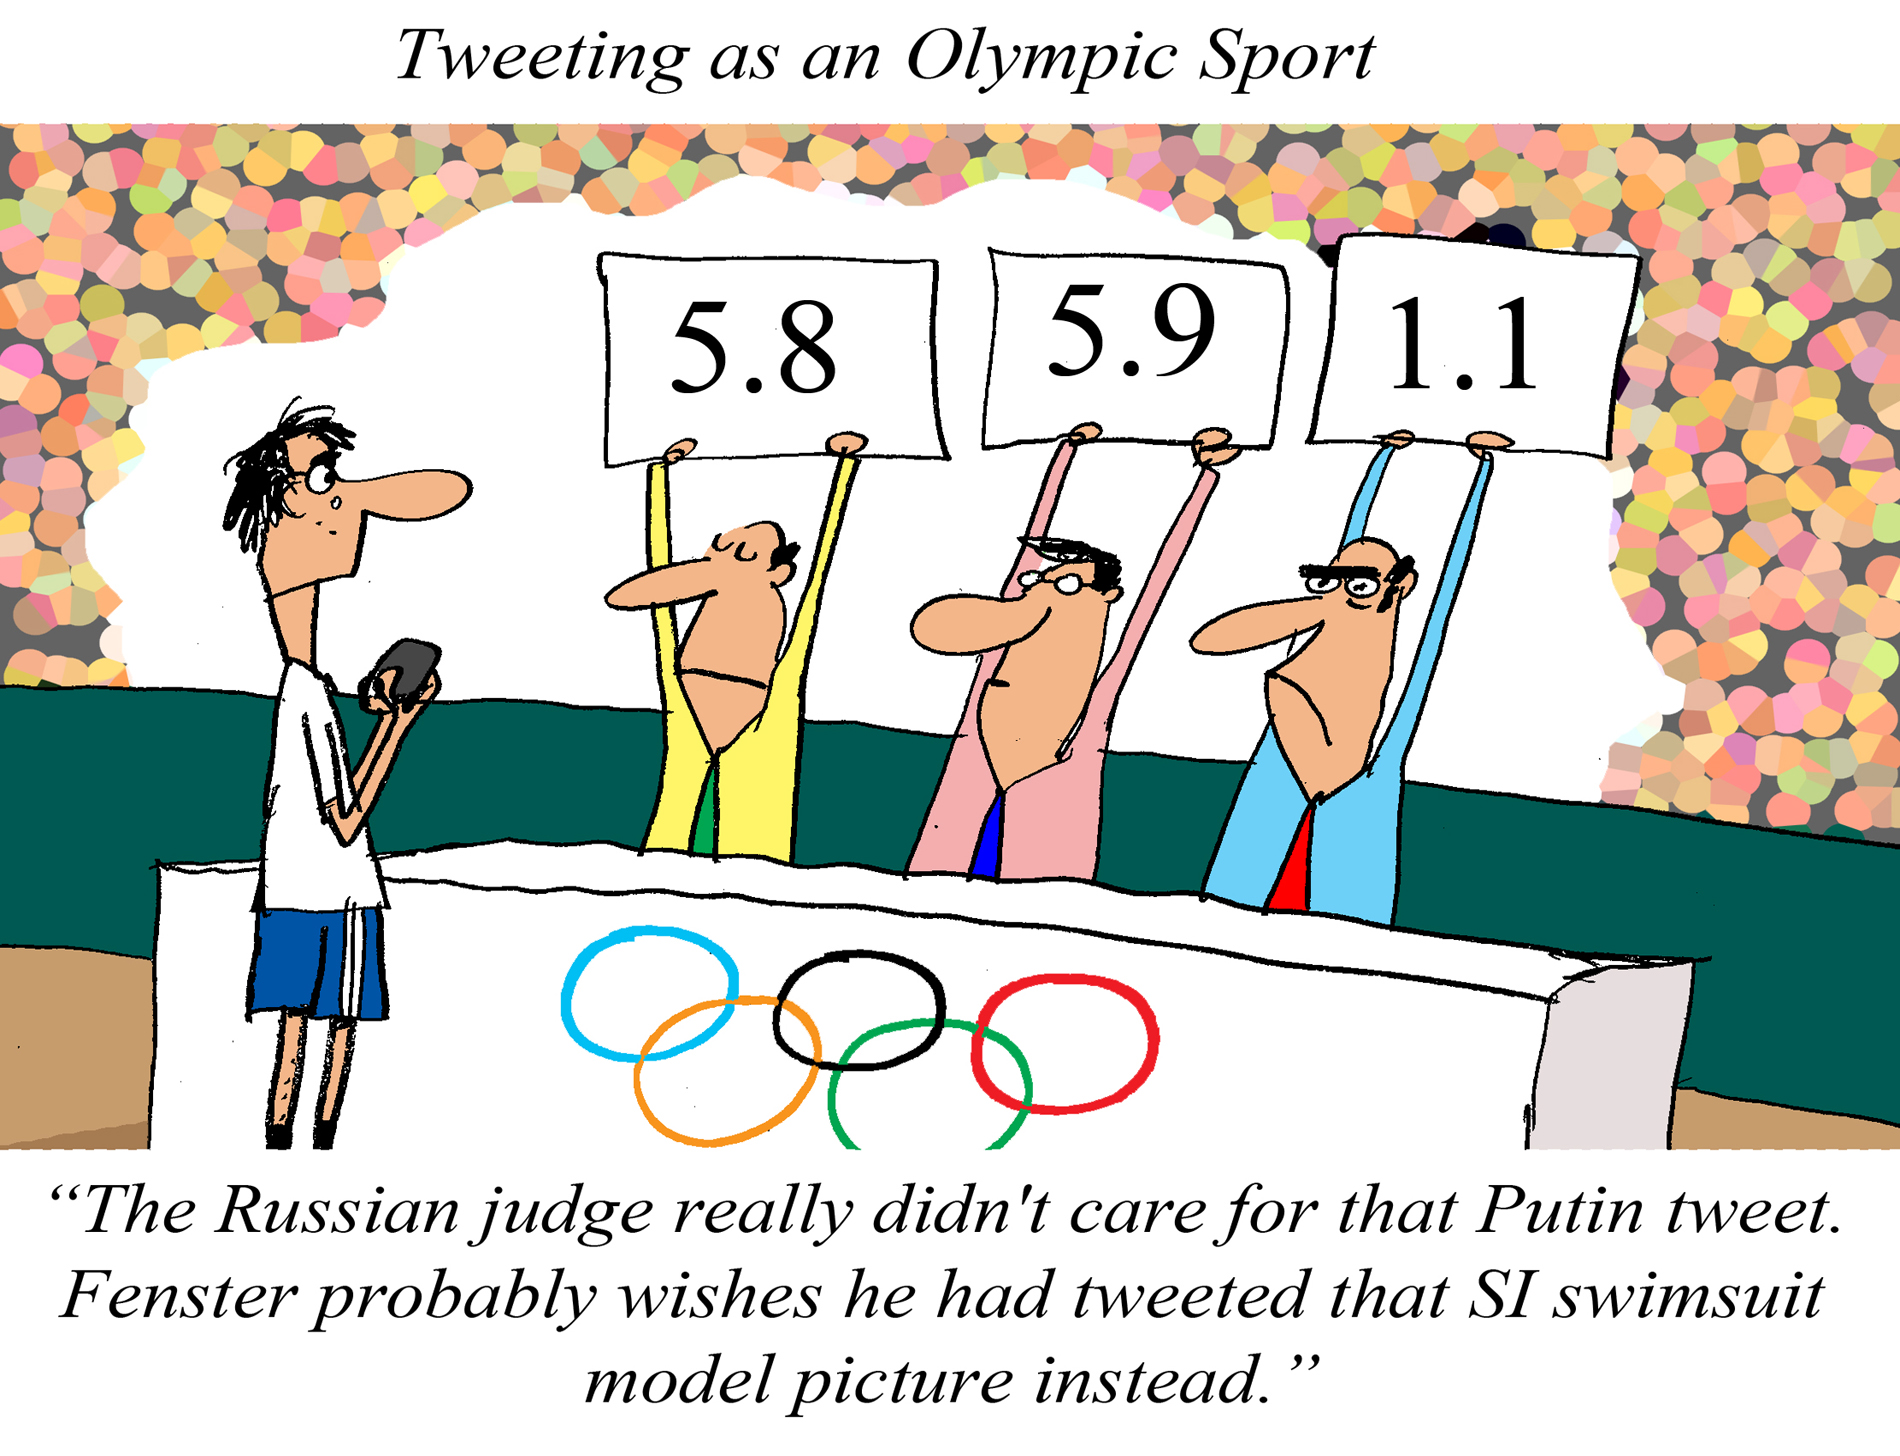 Tweeting as an Olympic Sport, by Jerry King